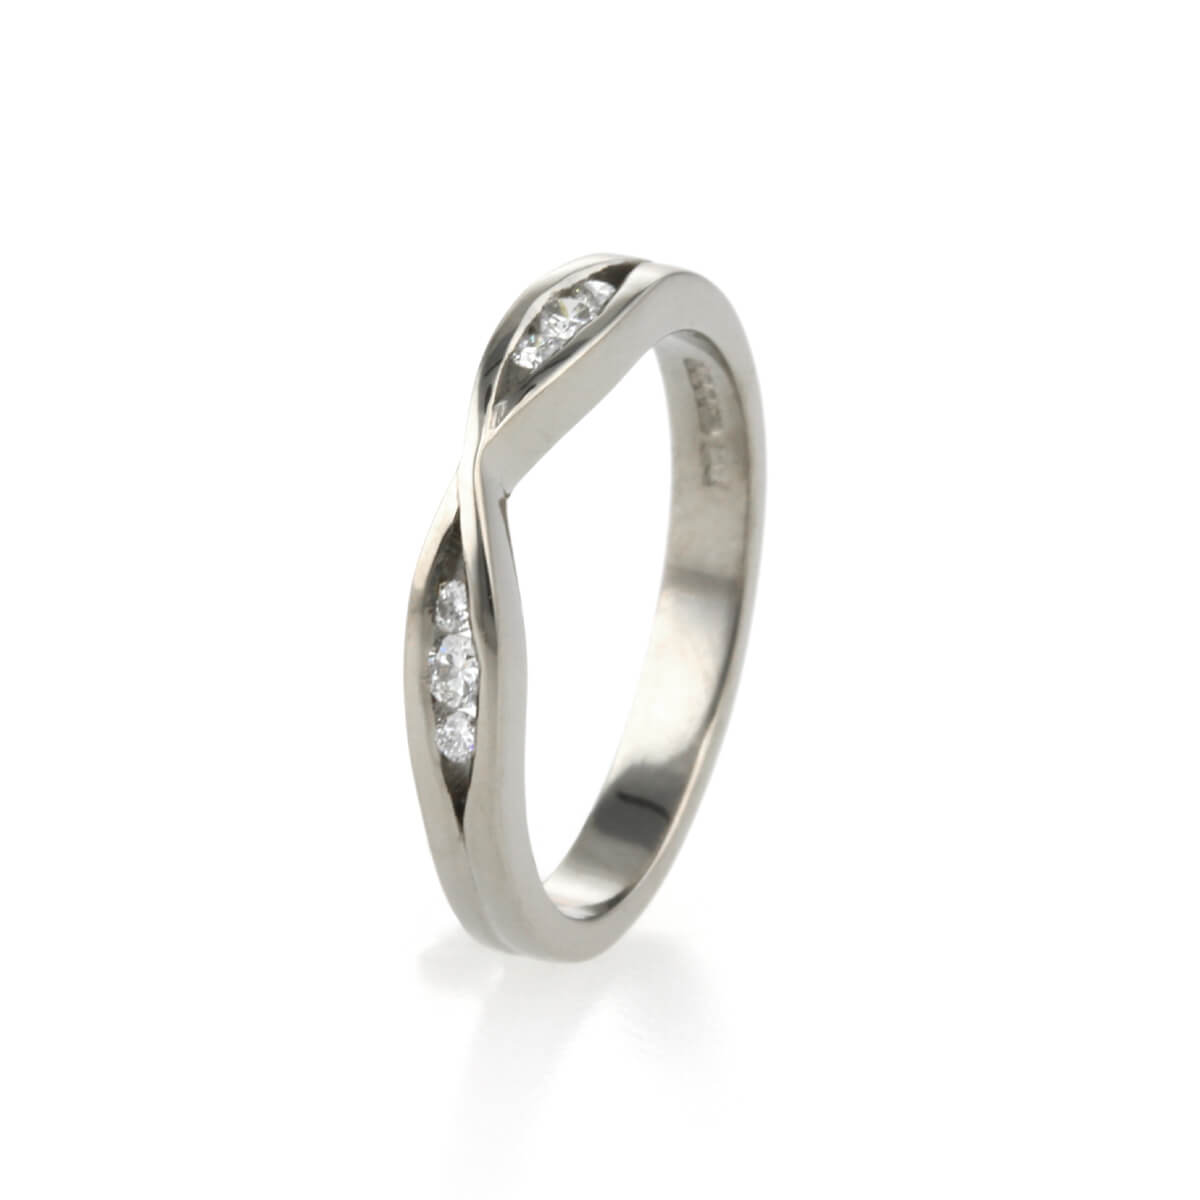 Handmade Infinity Inspired Wedding Ring made in 18ct white gold and diamonds